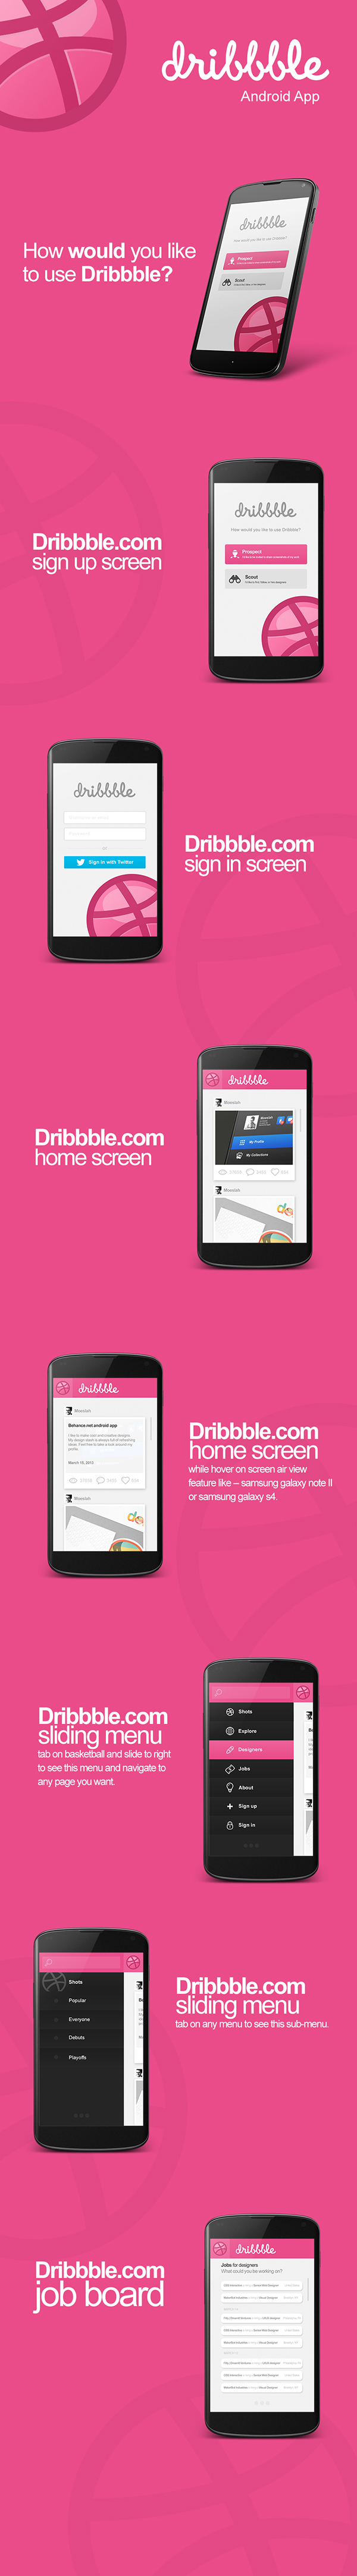 Dribbble.com Android app user interface design on Behance